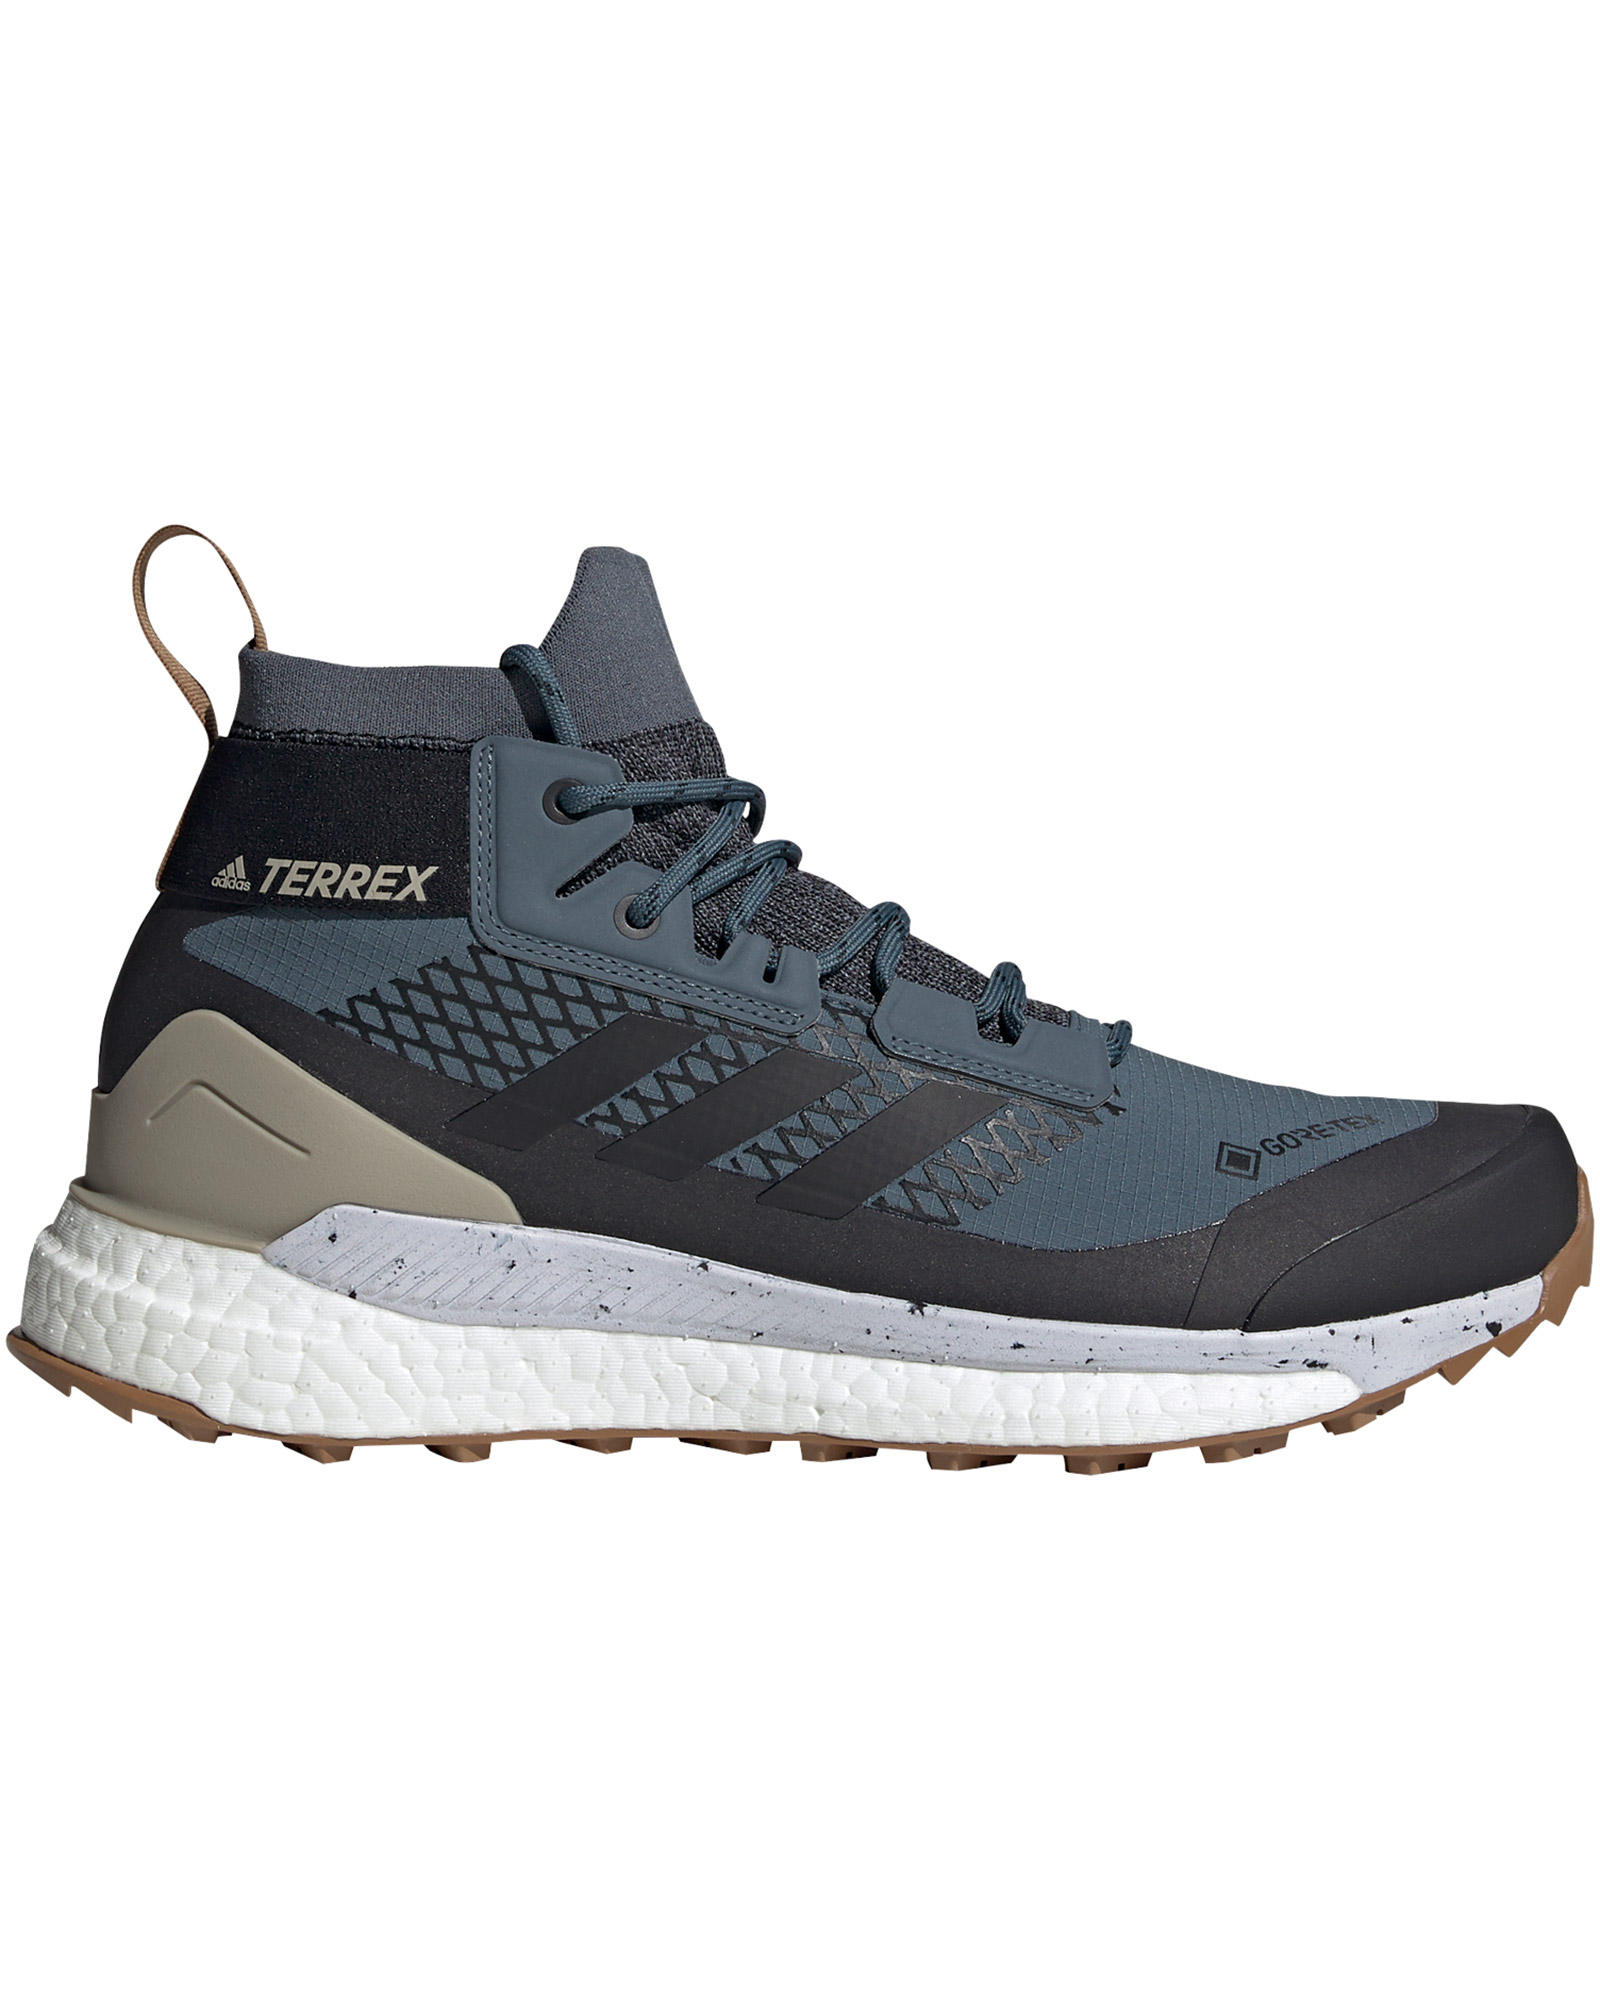 Adidas Terrex Men's Free Hiker GORE-TEX Shoes 0